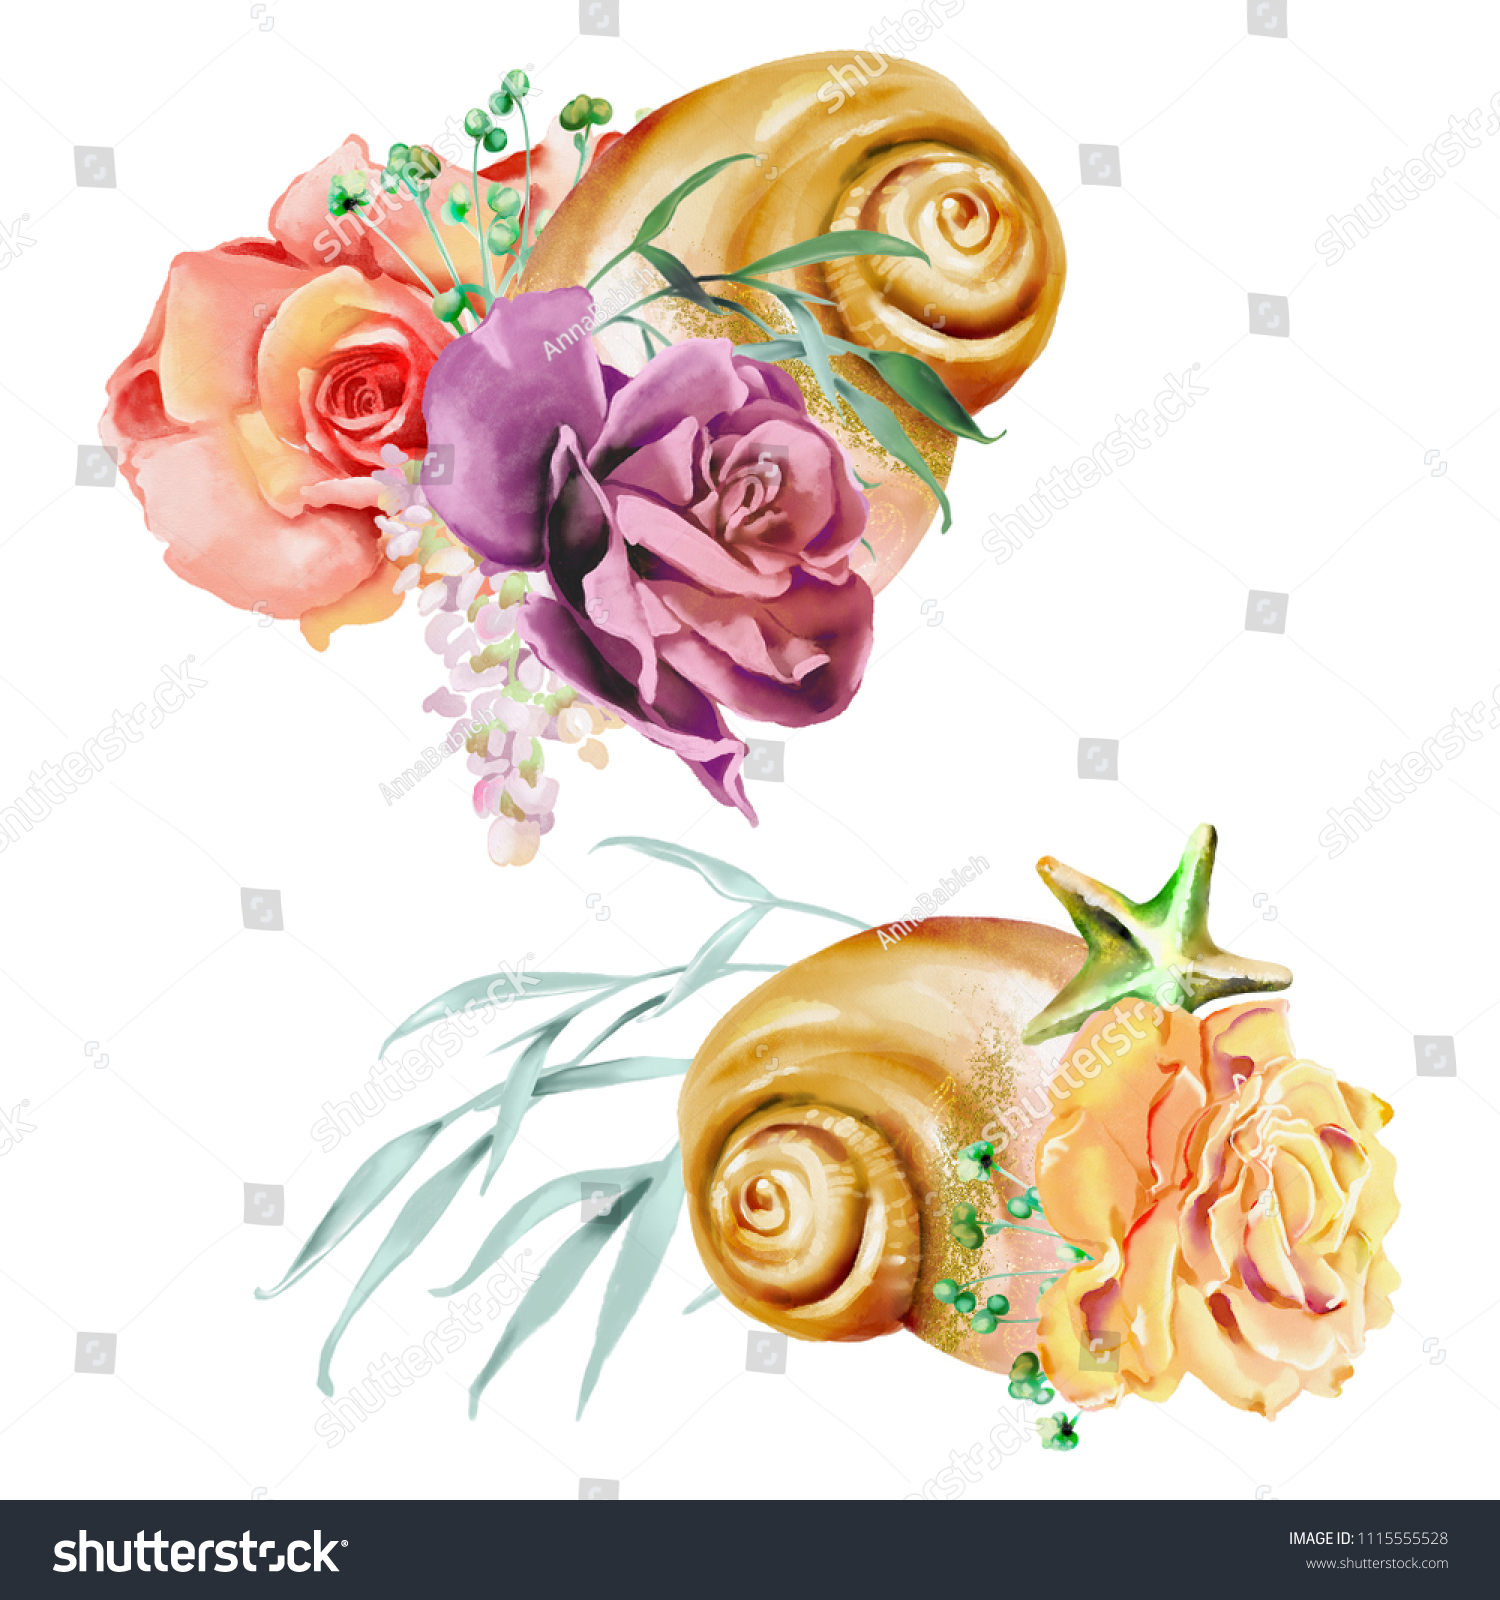 Beautiful Watercolor Flowers Floral Wreaths Bouquets Stock